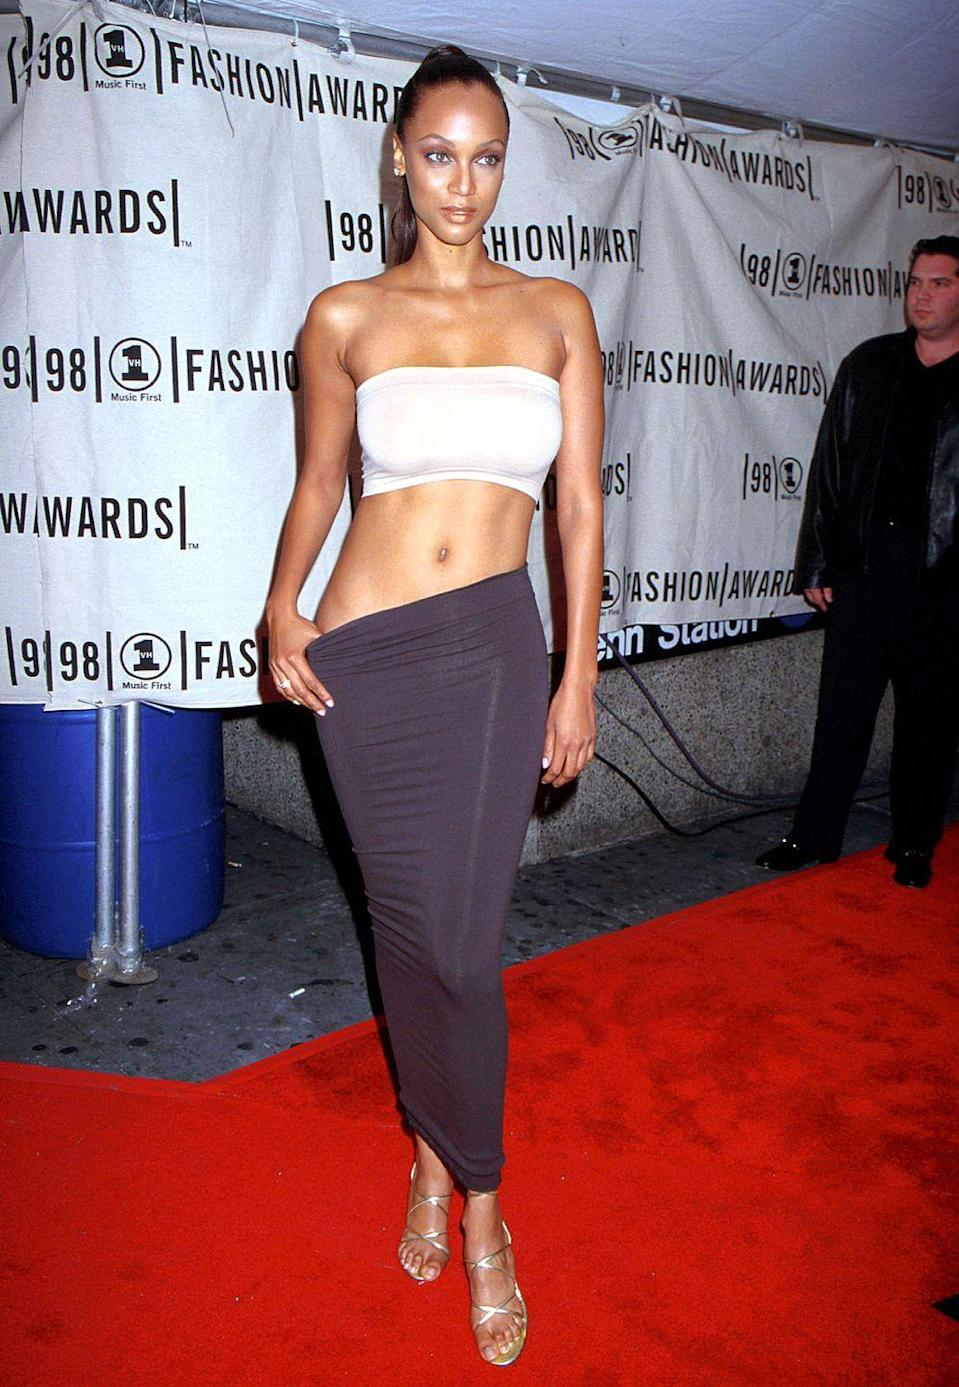 <p>Like her cropped tube top and tube skirt, Tyra Banks's metallic, shiny shoes were also a '90s fashion staple.</p>